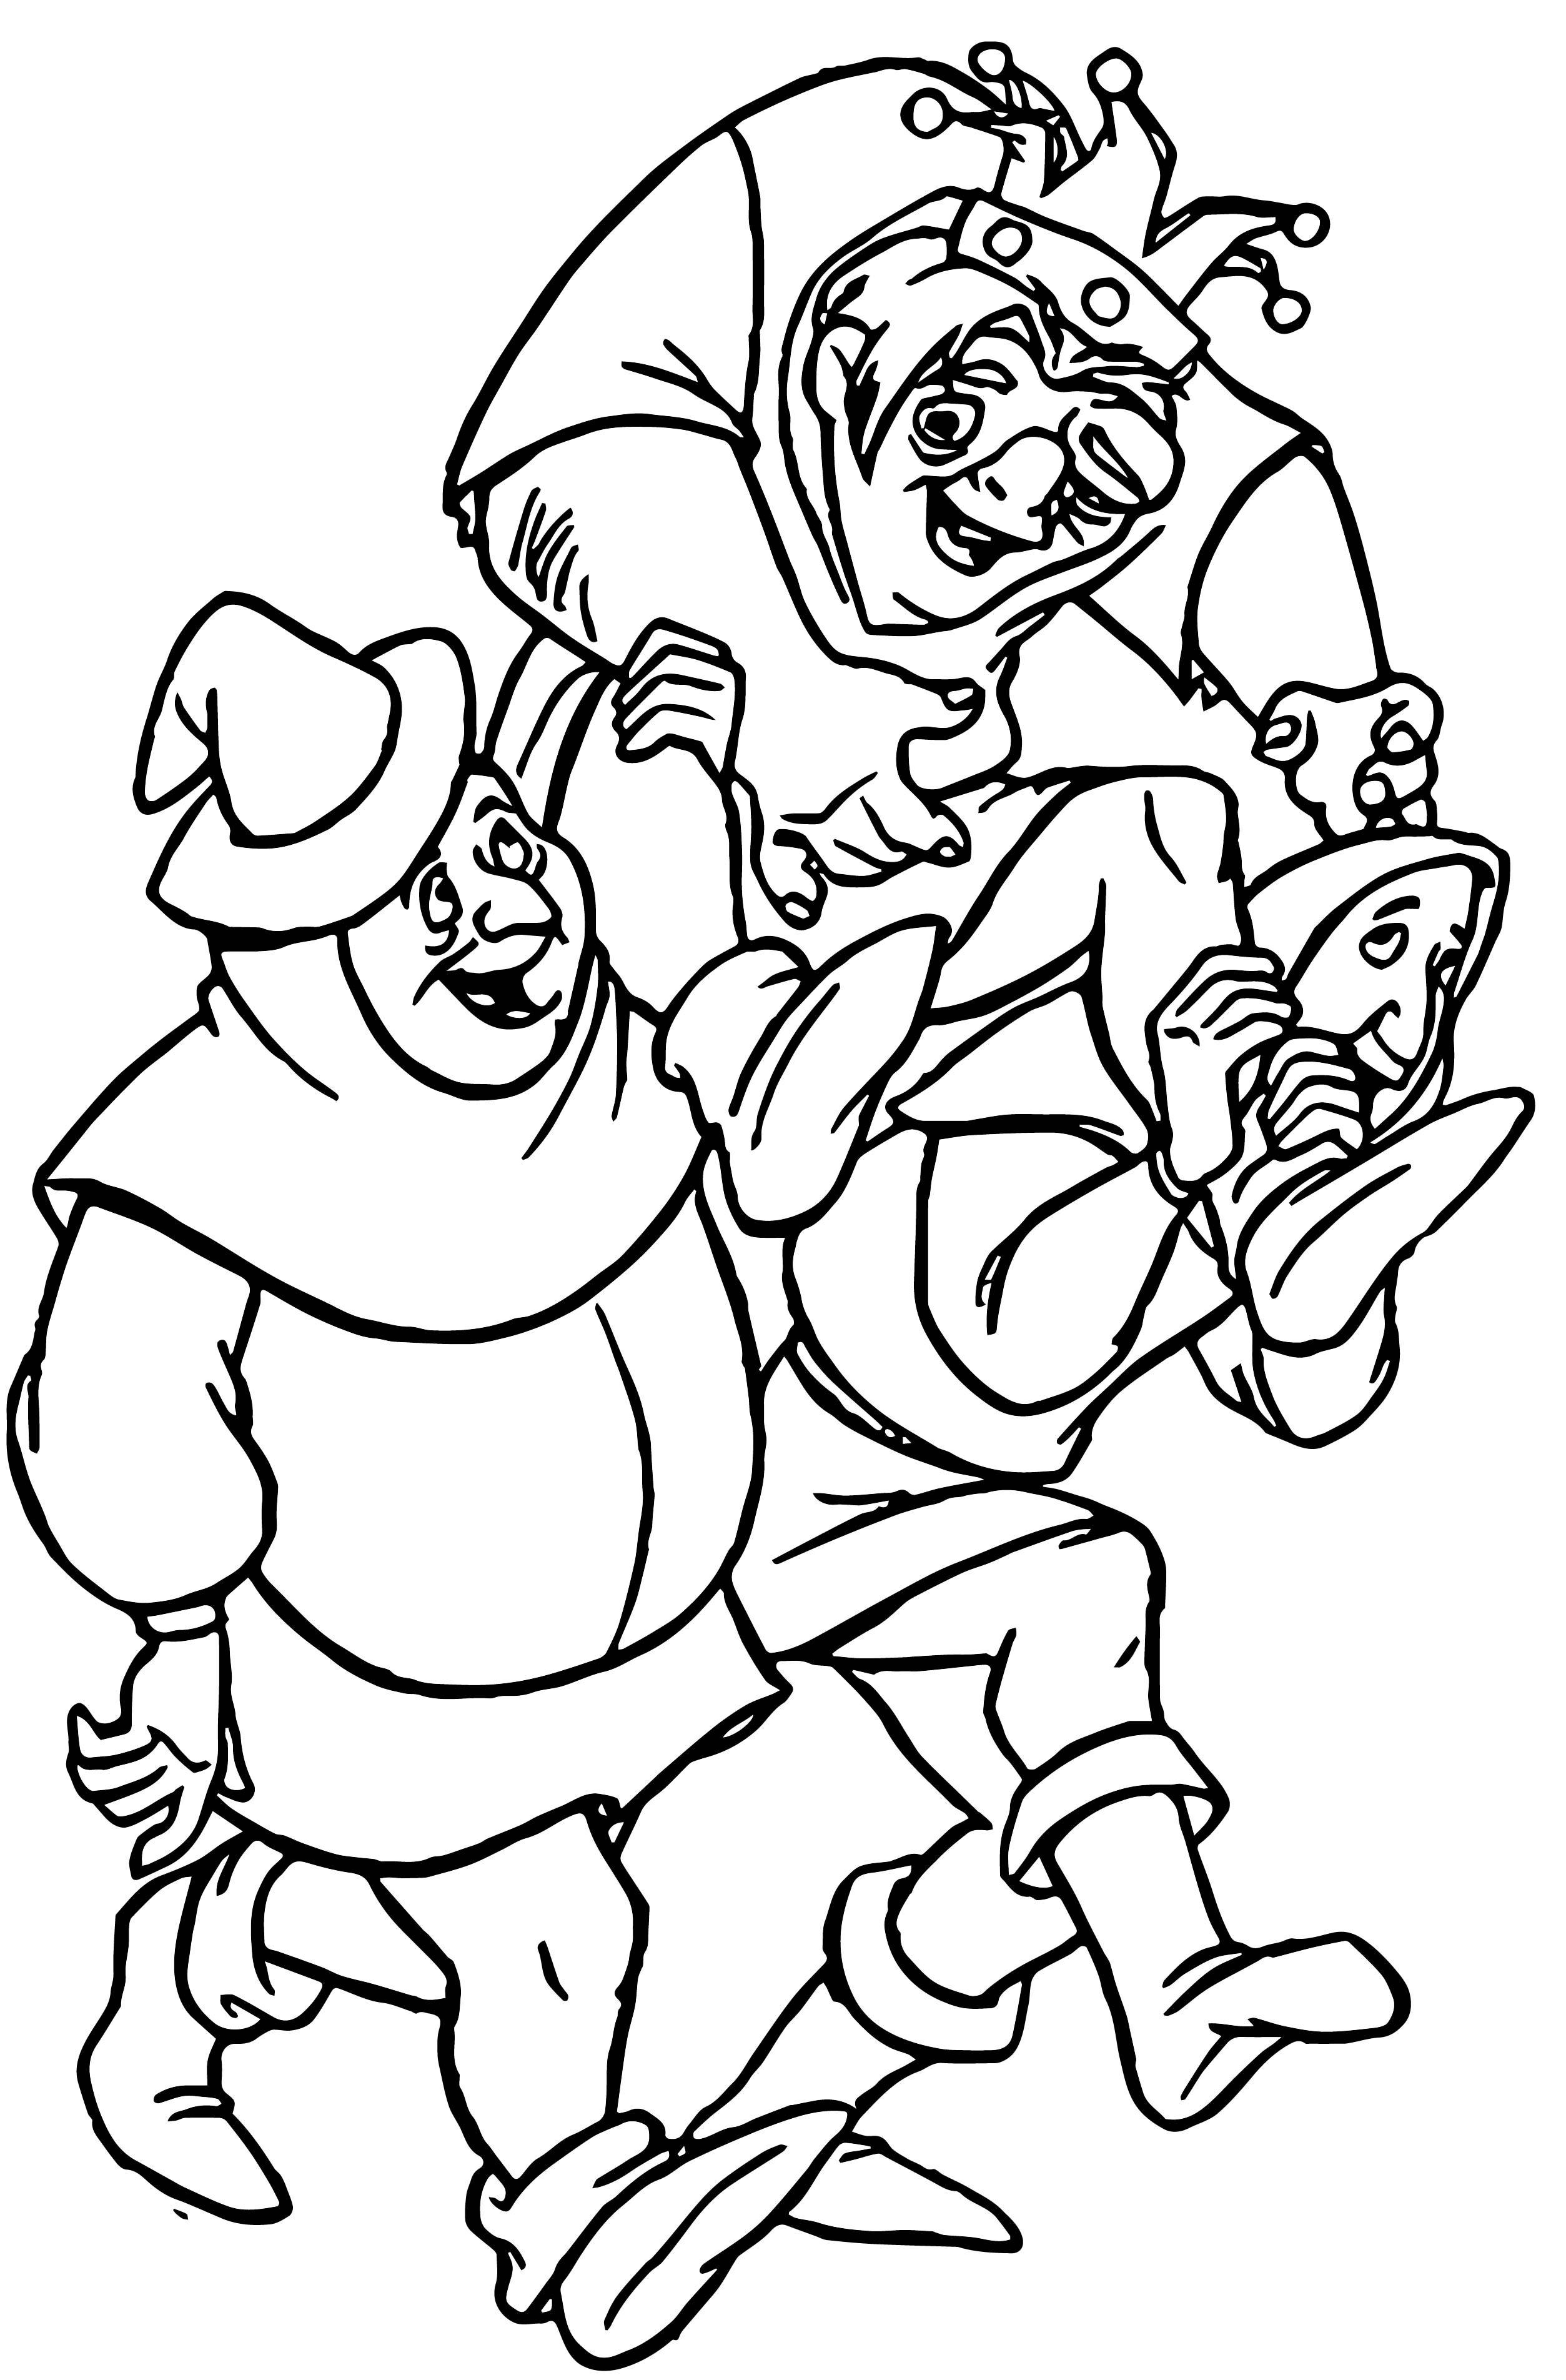 The Hunchback Of Notre Dame Hfr2 Coloring Page